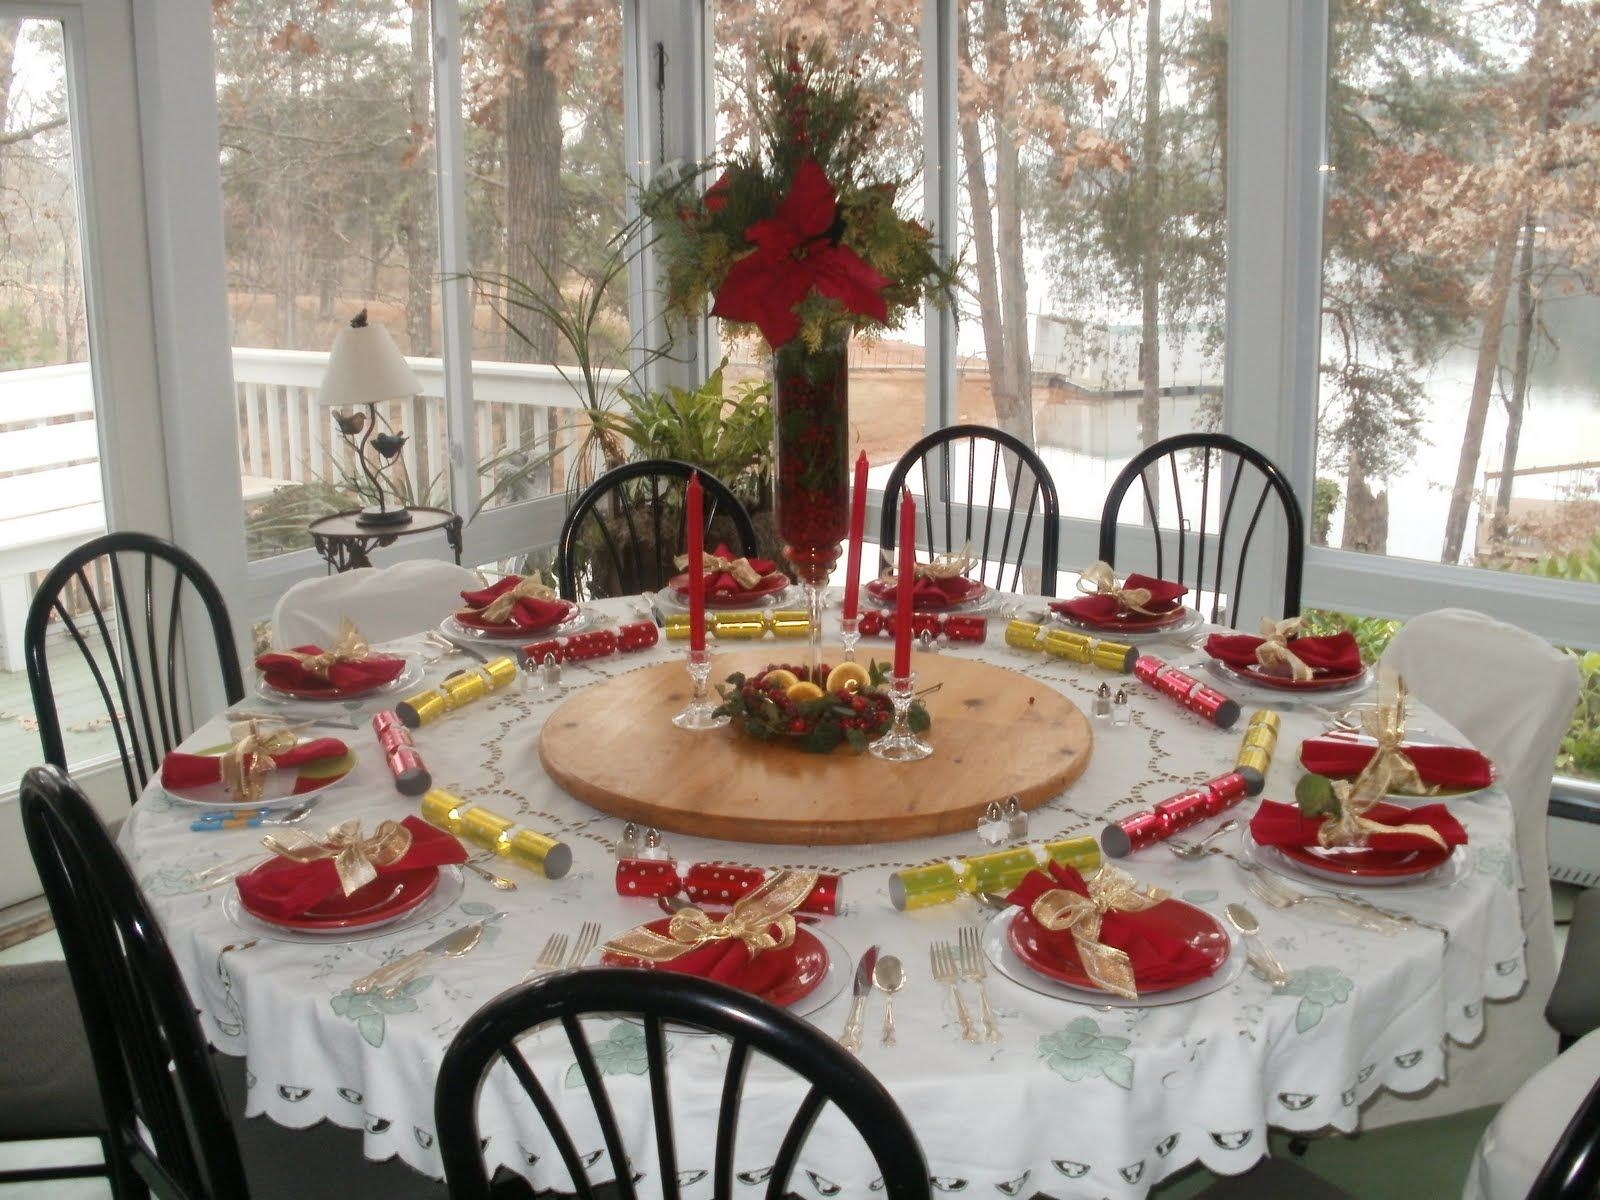 Christmas table decoration ideas for parties - Table Settings For Dinner Party Google Search Round Table Decorationschristmas